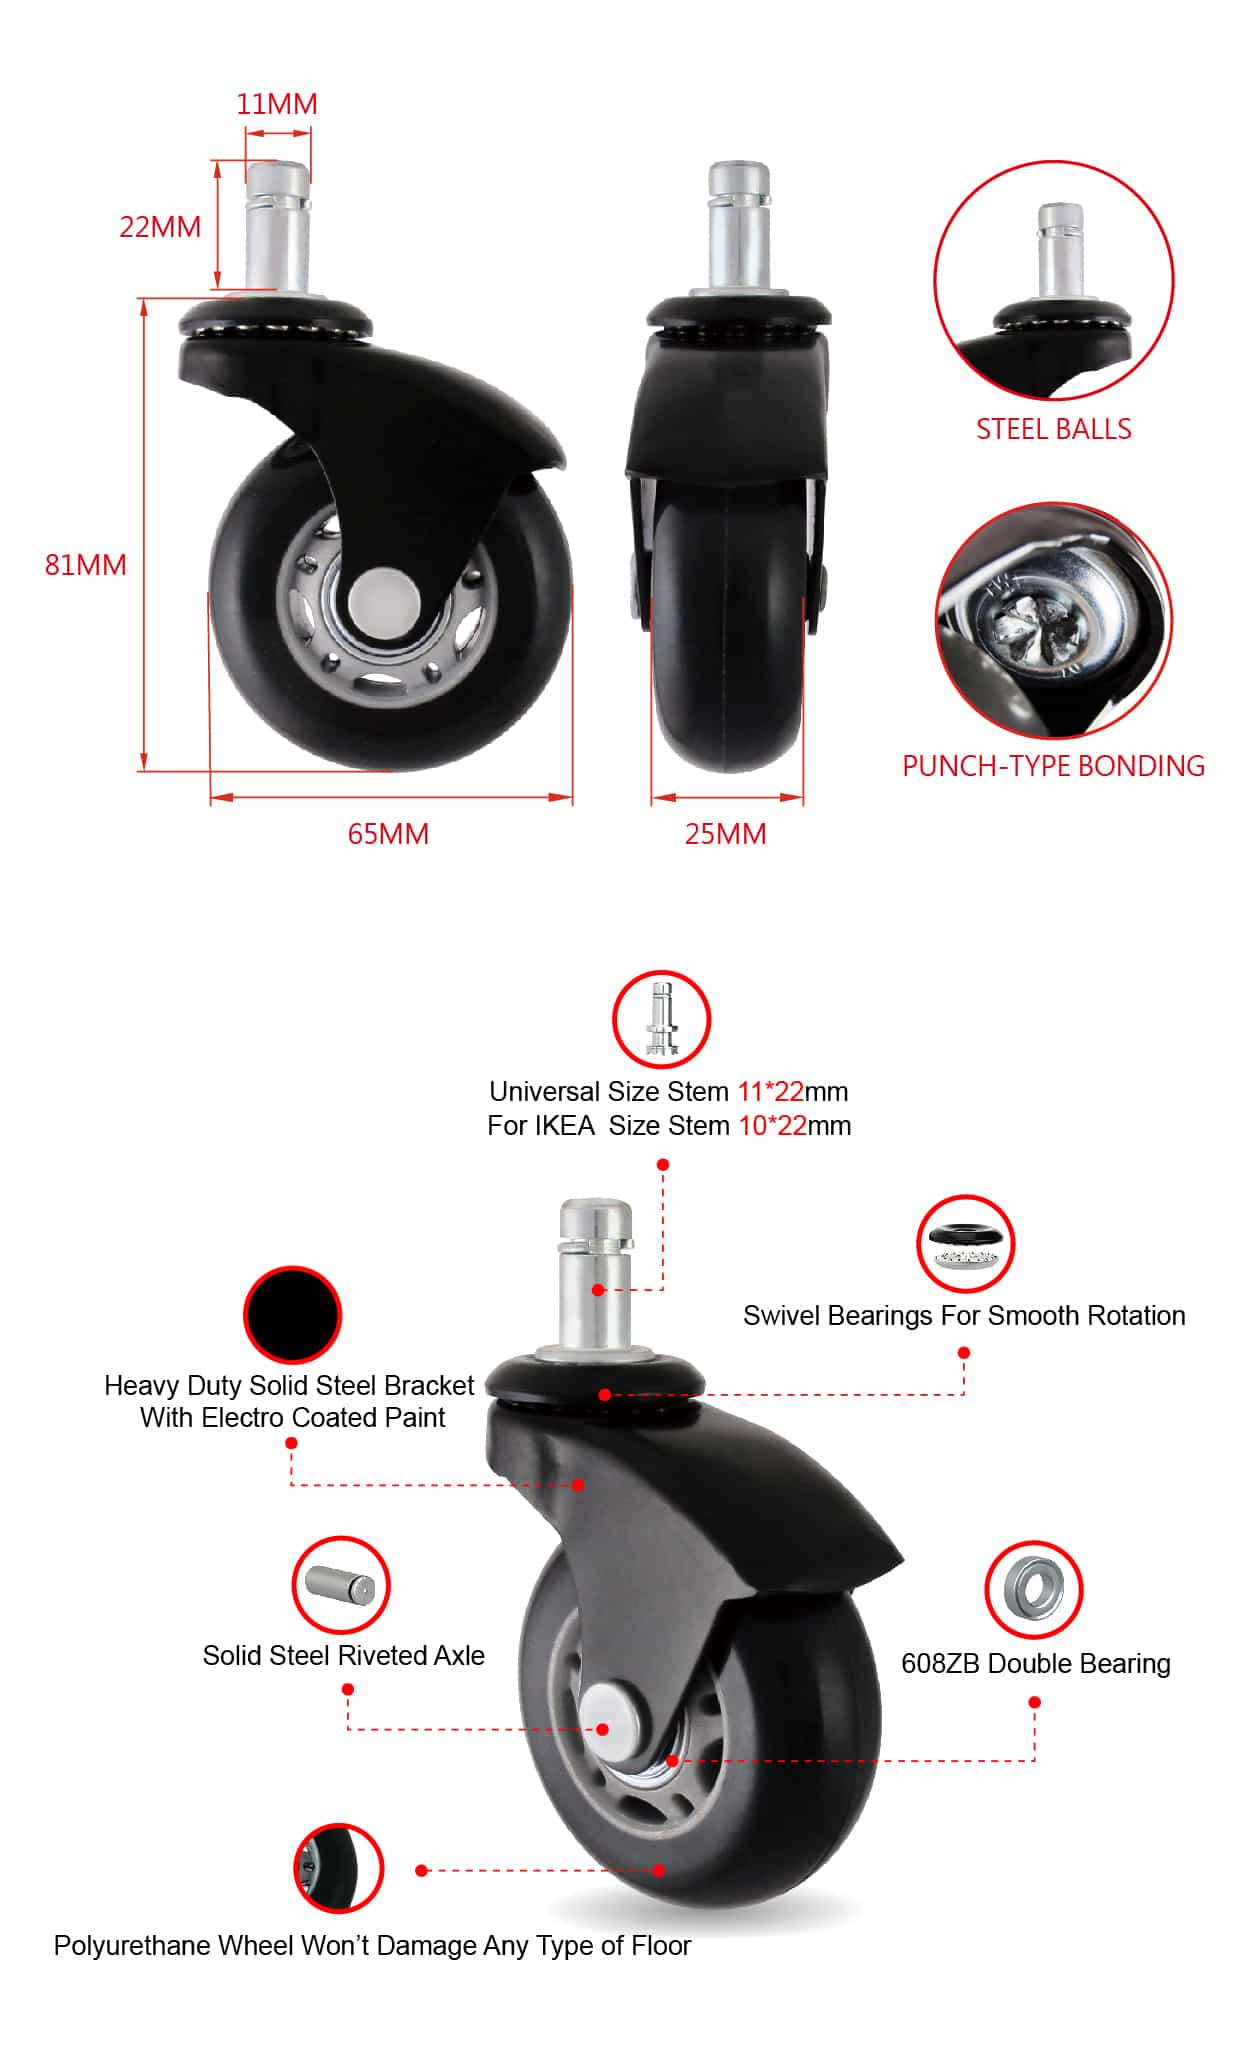 CCE 2 .5 Chair DIY Polyurethane Table Caster Wheel Angle Design Specification.jpg